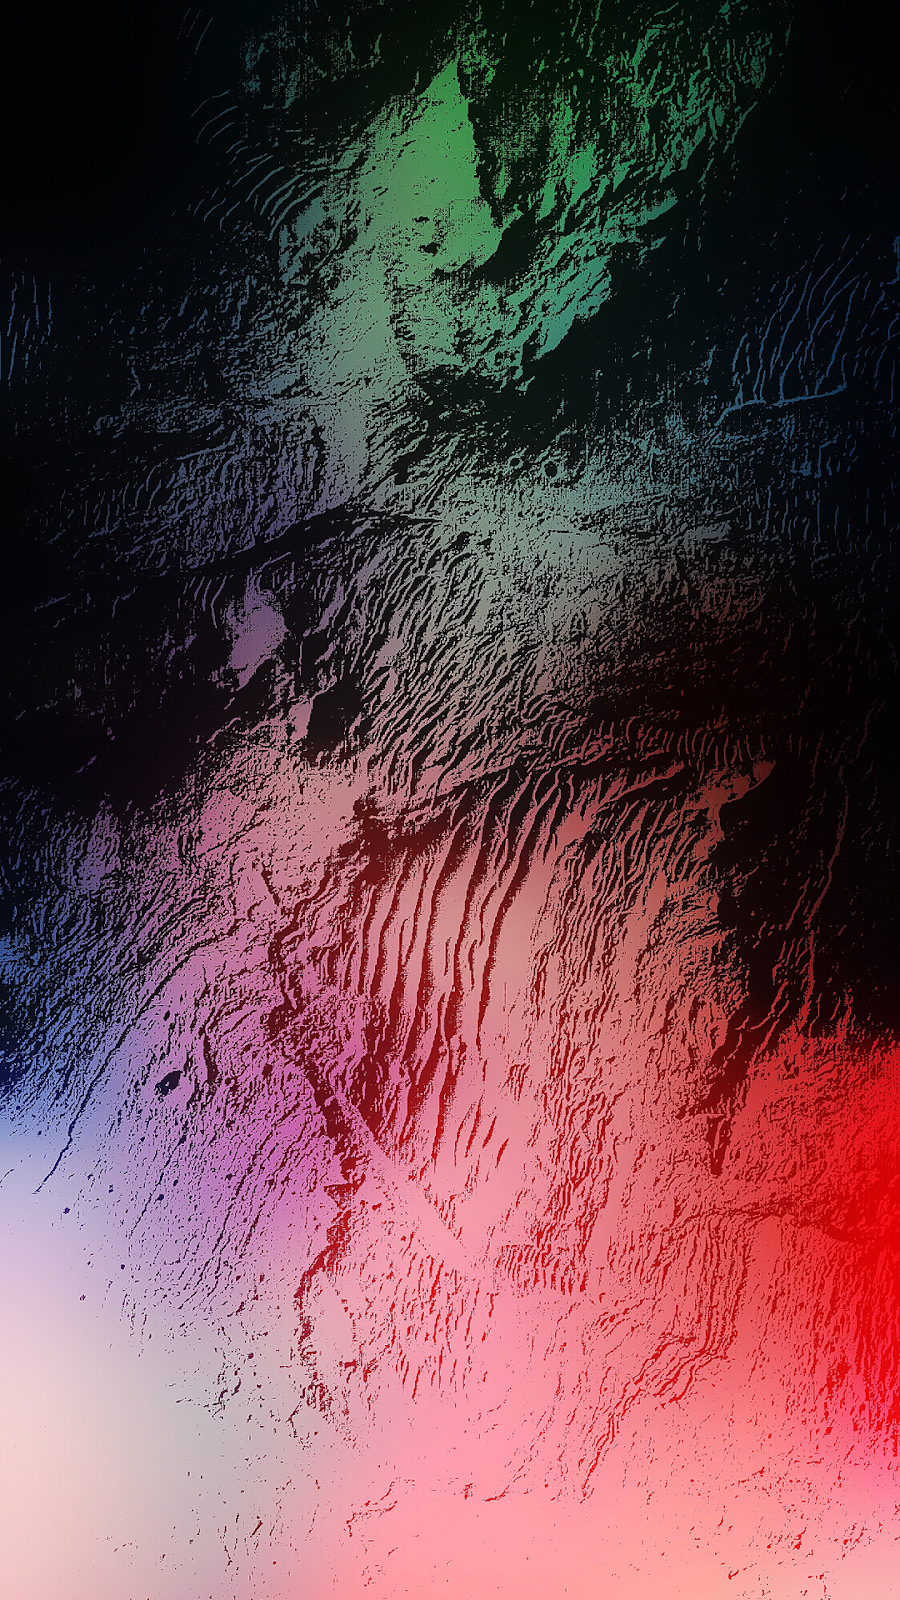 Mars by AR07 [iPhone X] other phone version in the link